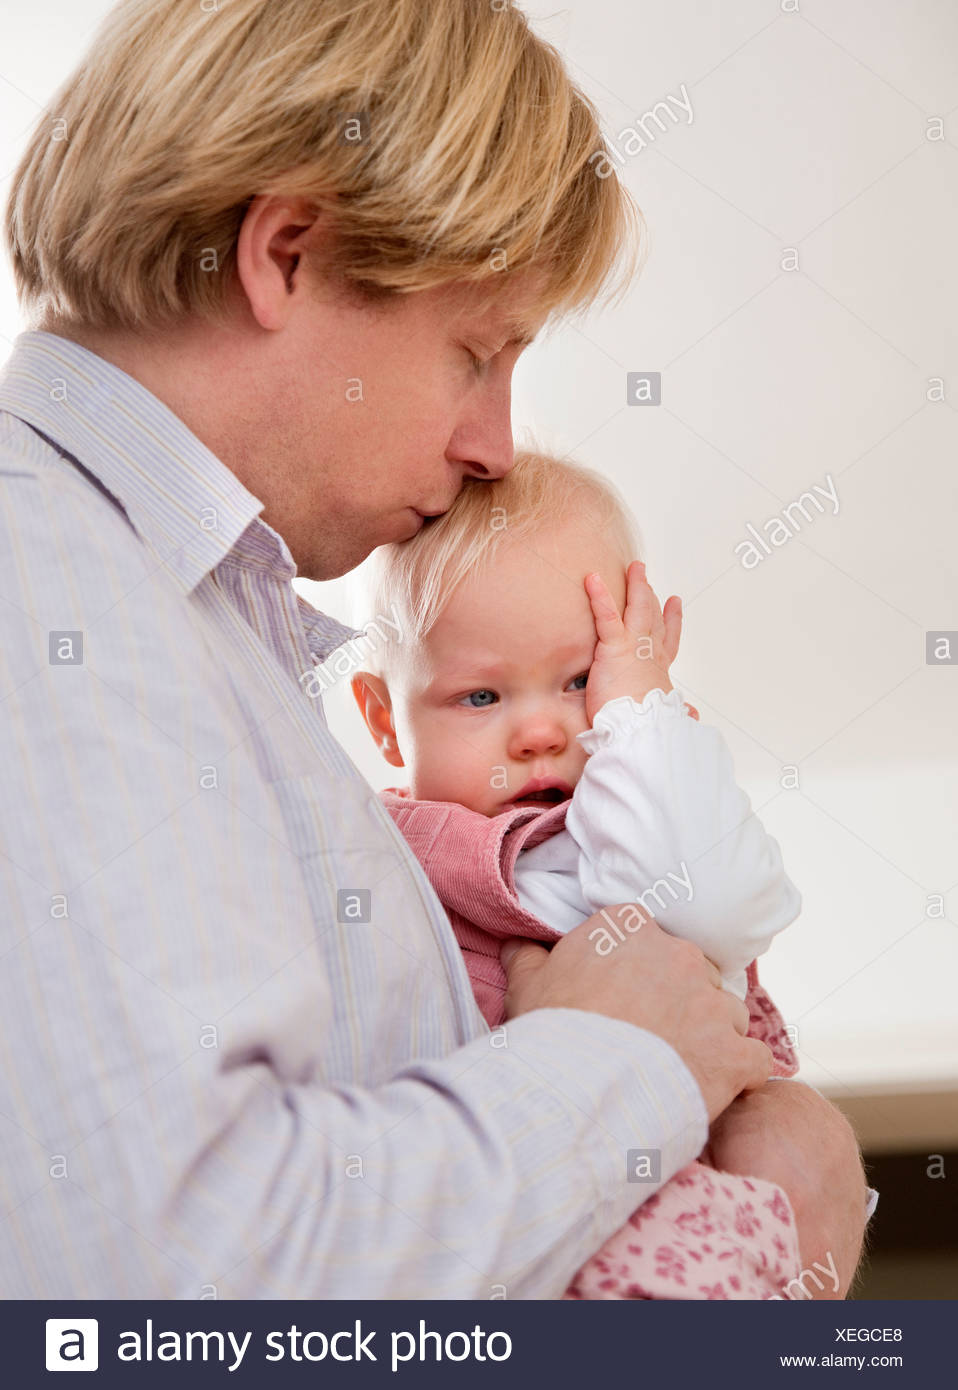 father comforting crying baby - Stock Image